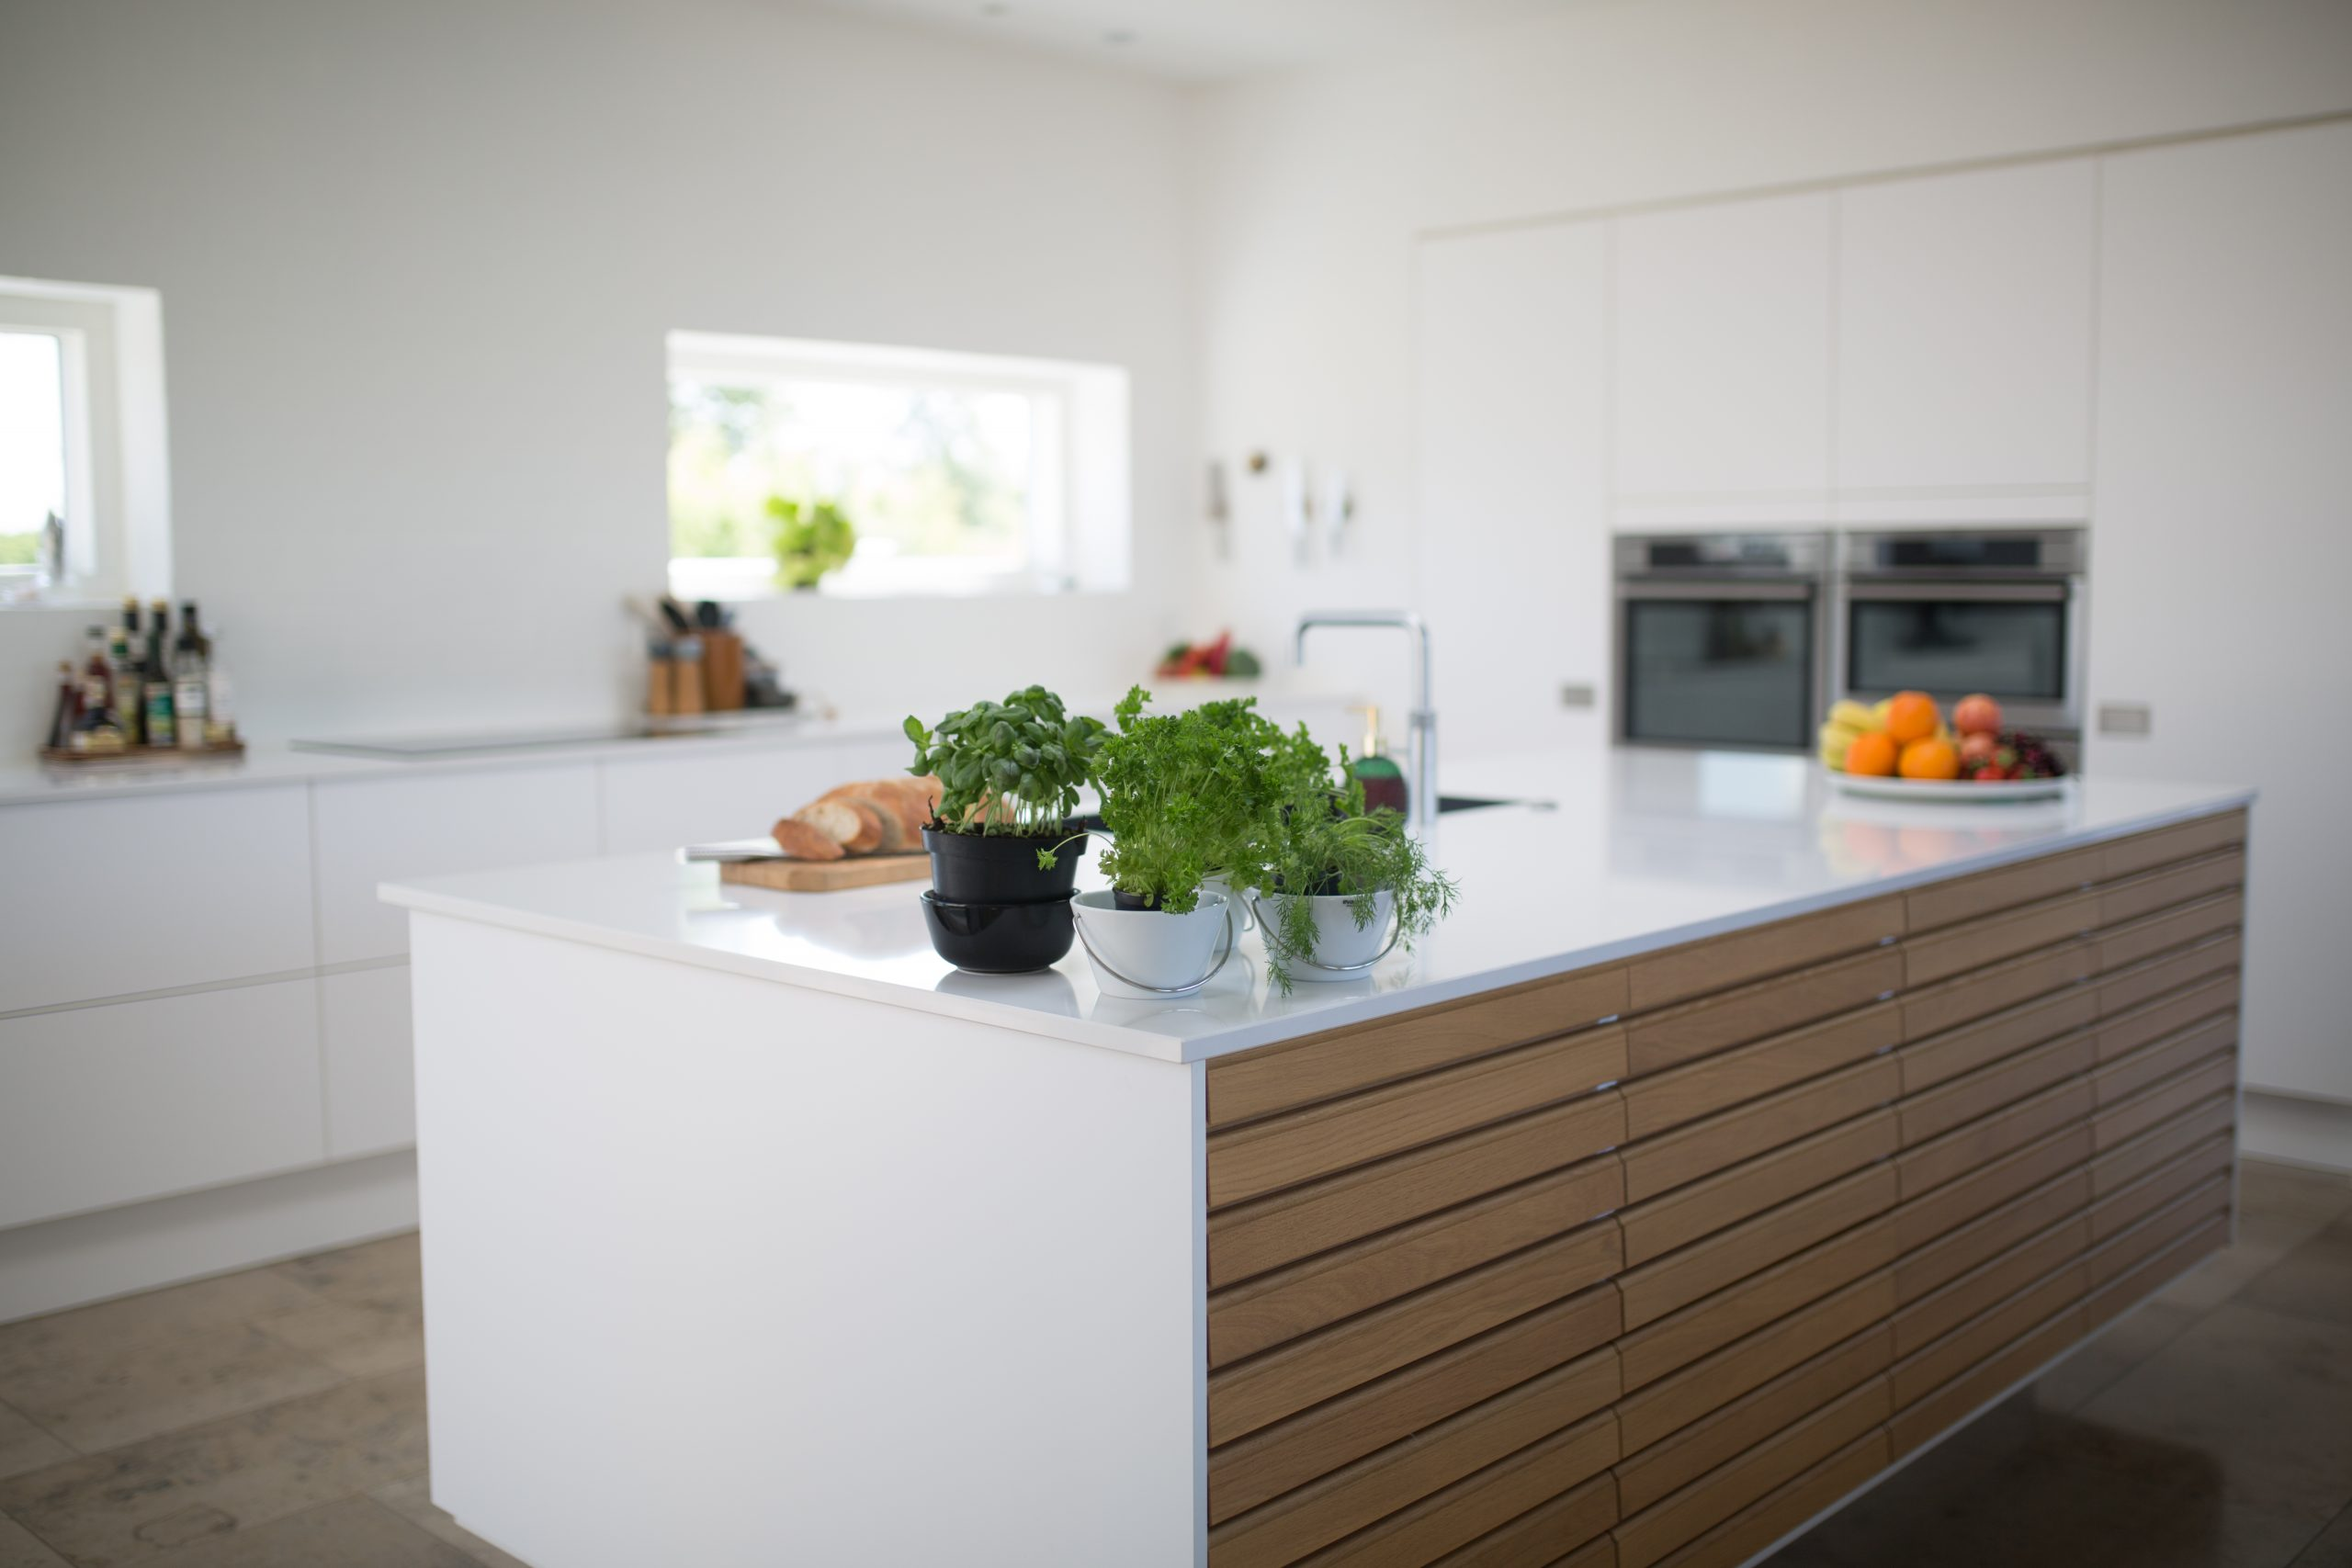 Canva - Green Leafed Plants On Kitchen Island